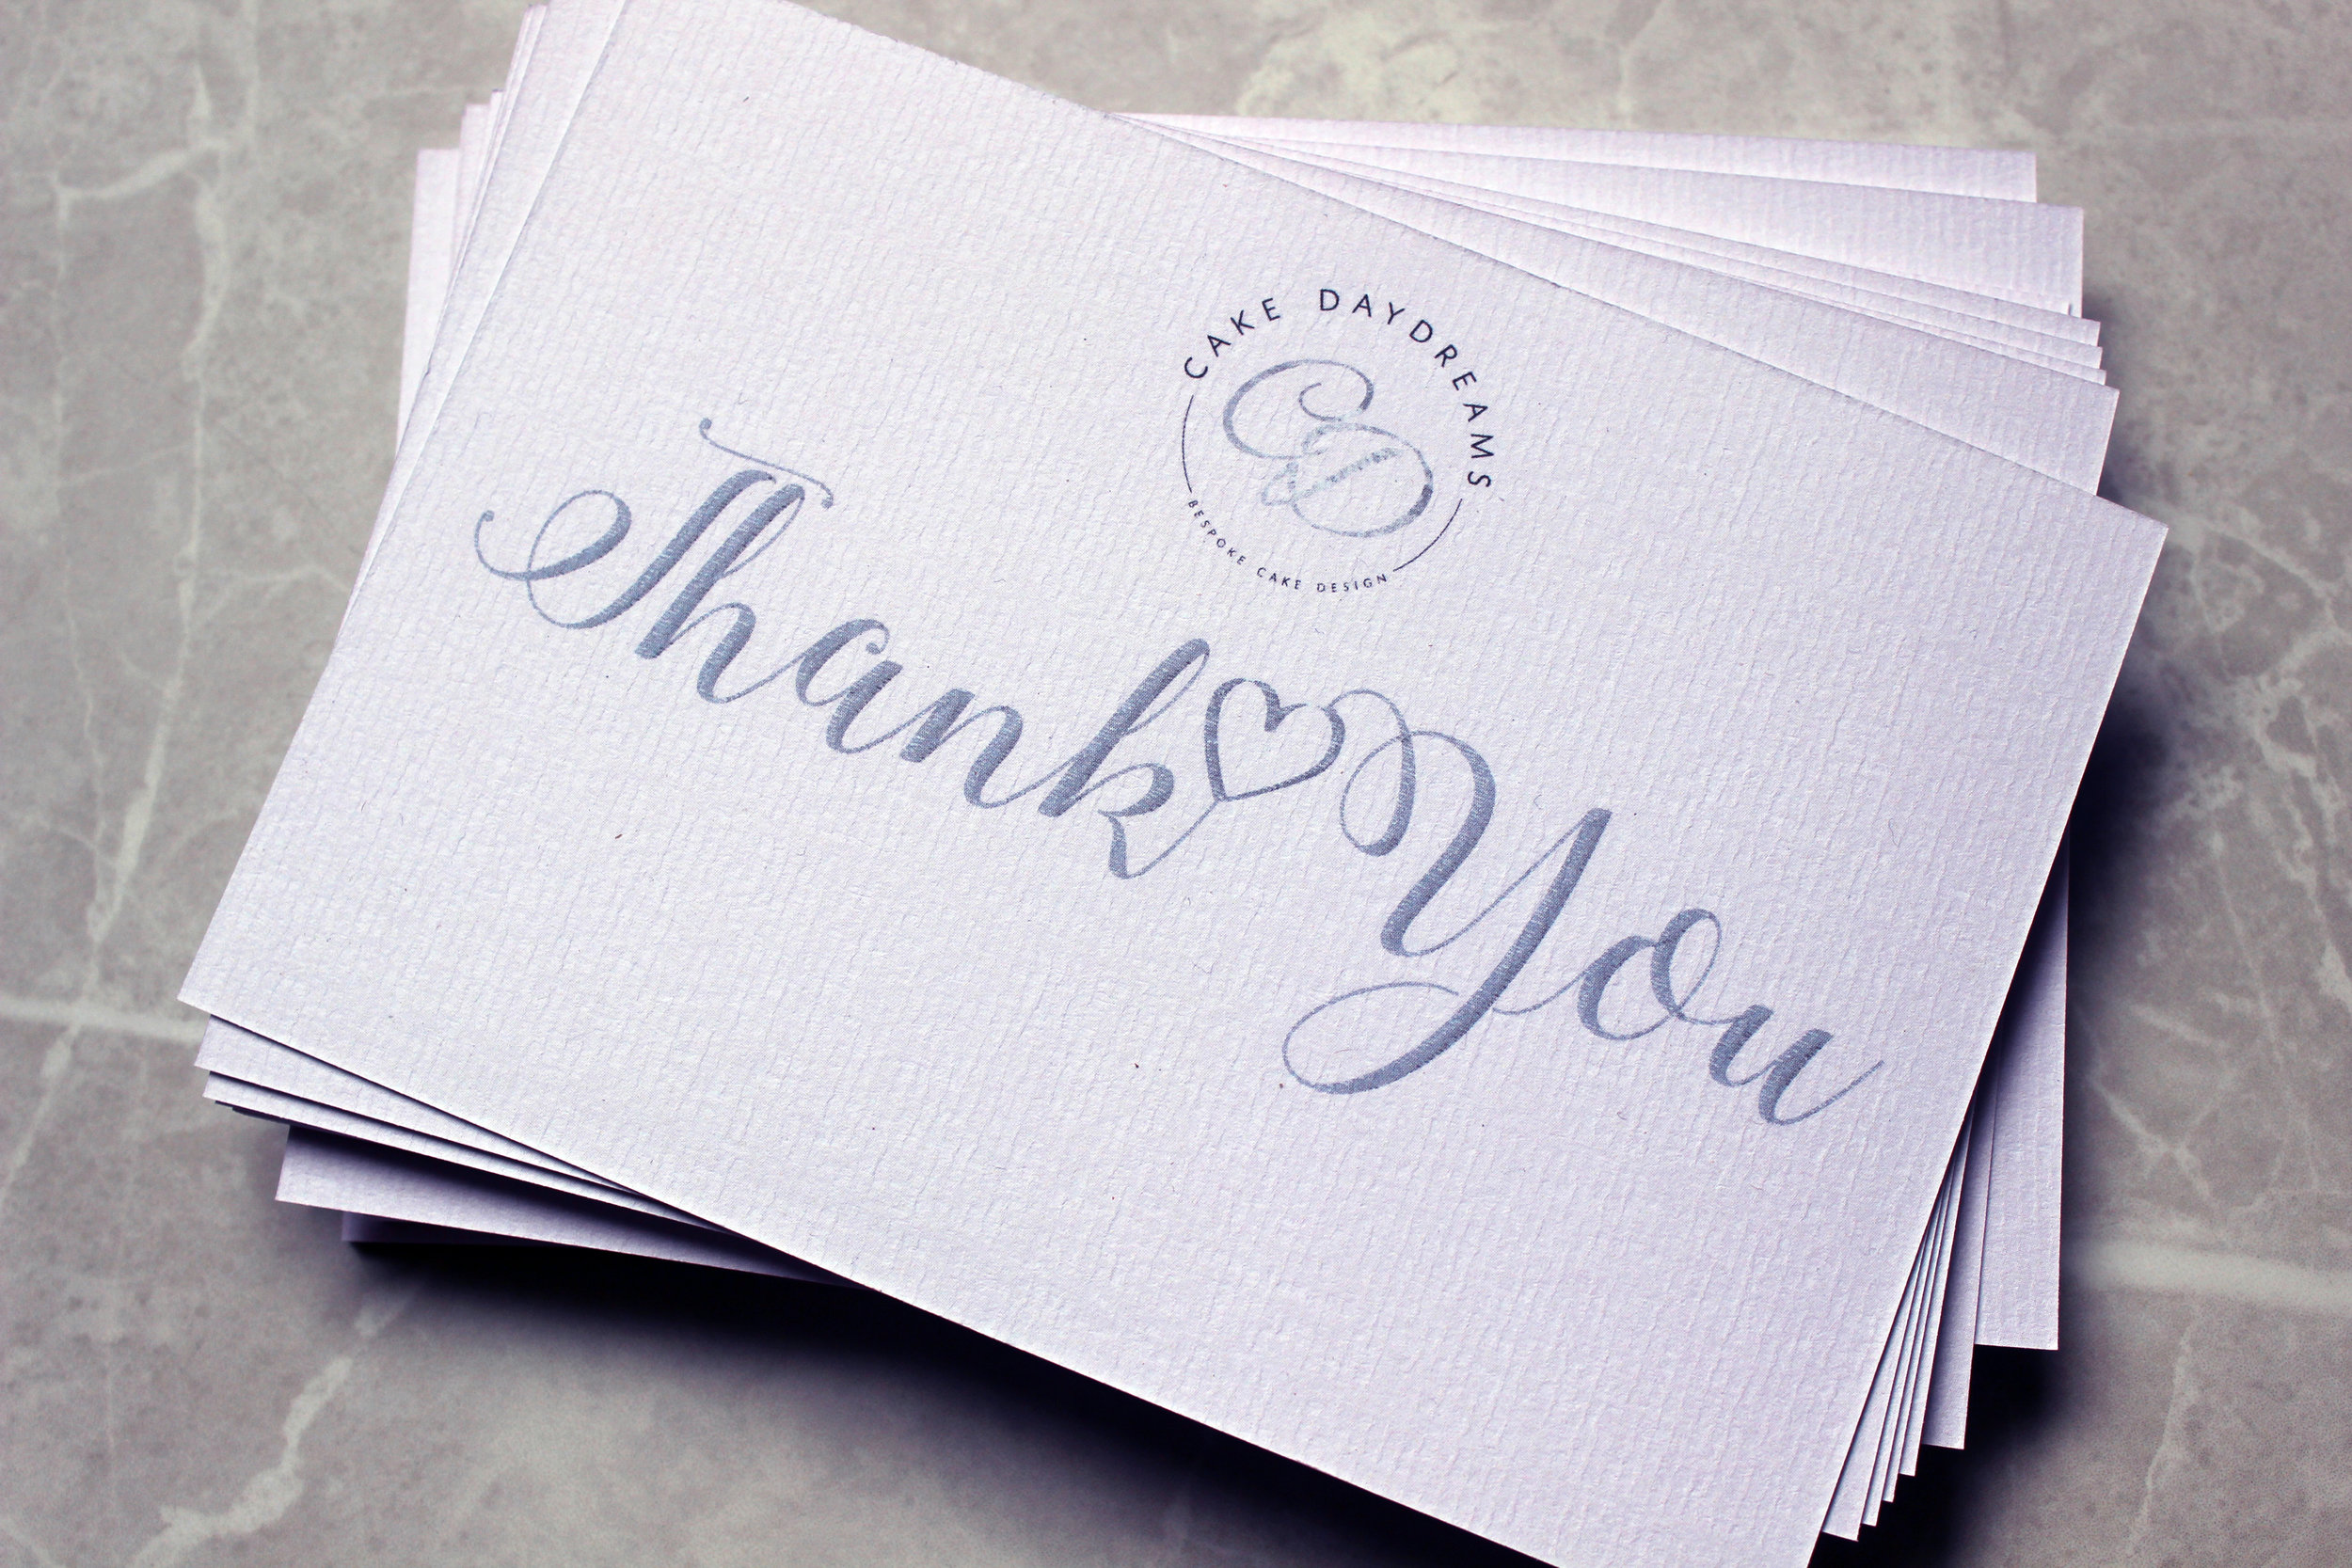 Thank You Cards: Cake Daydreams